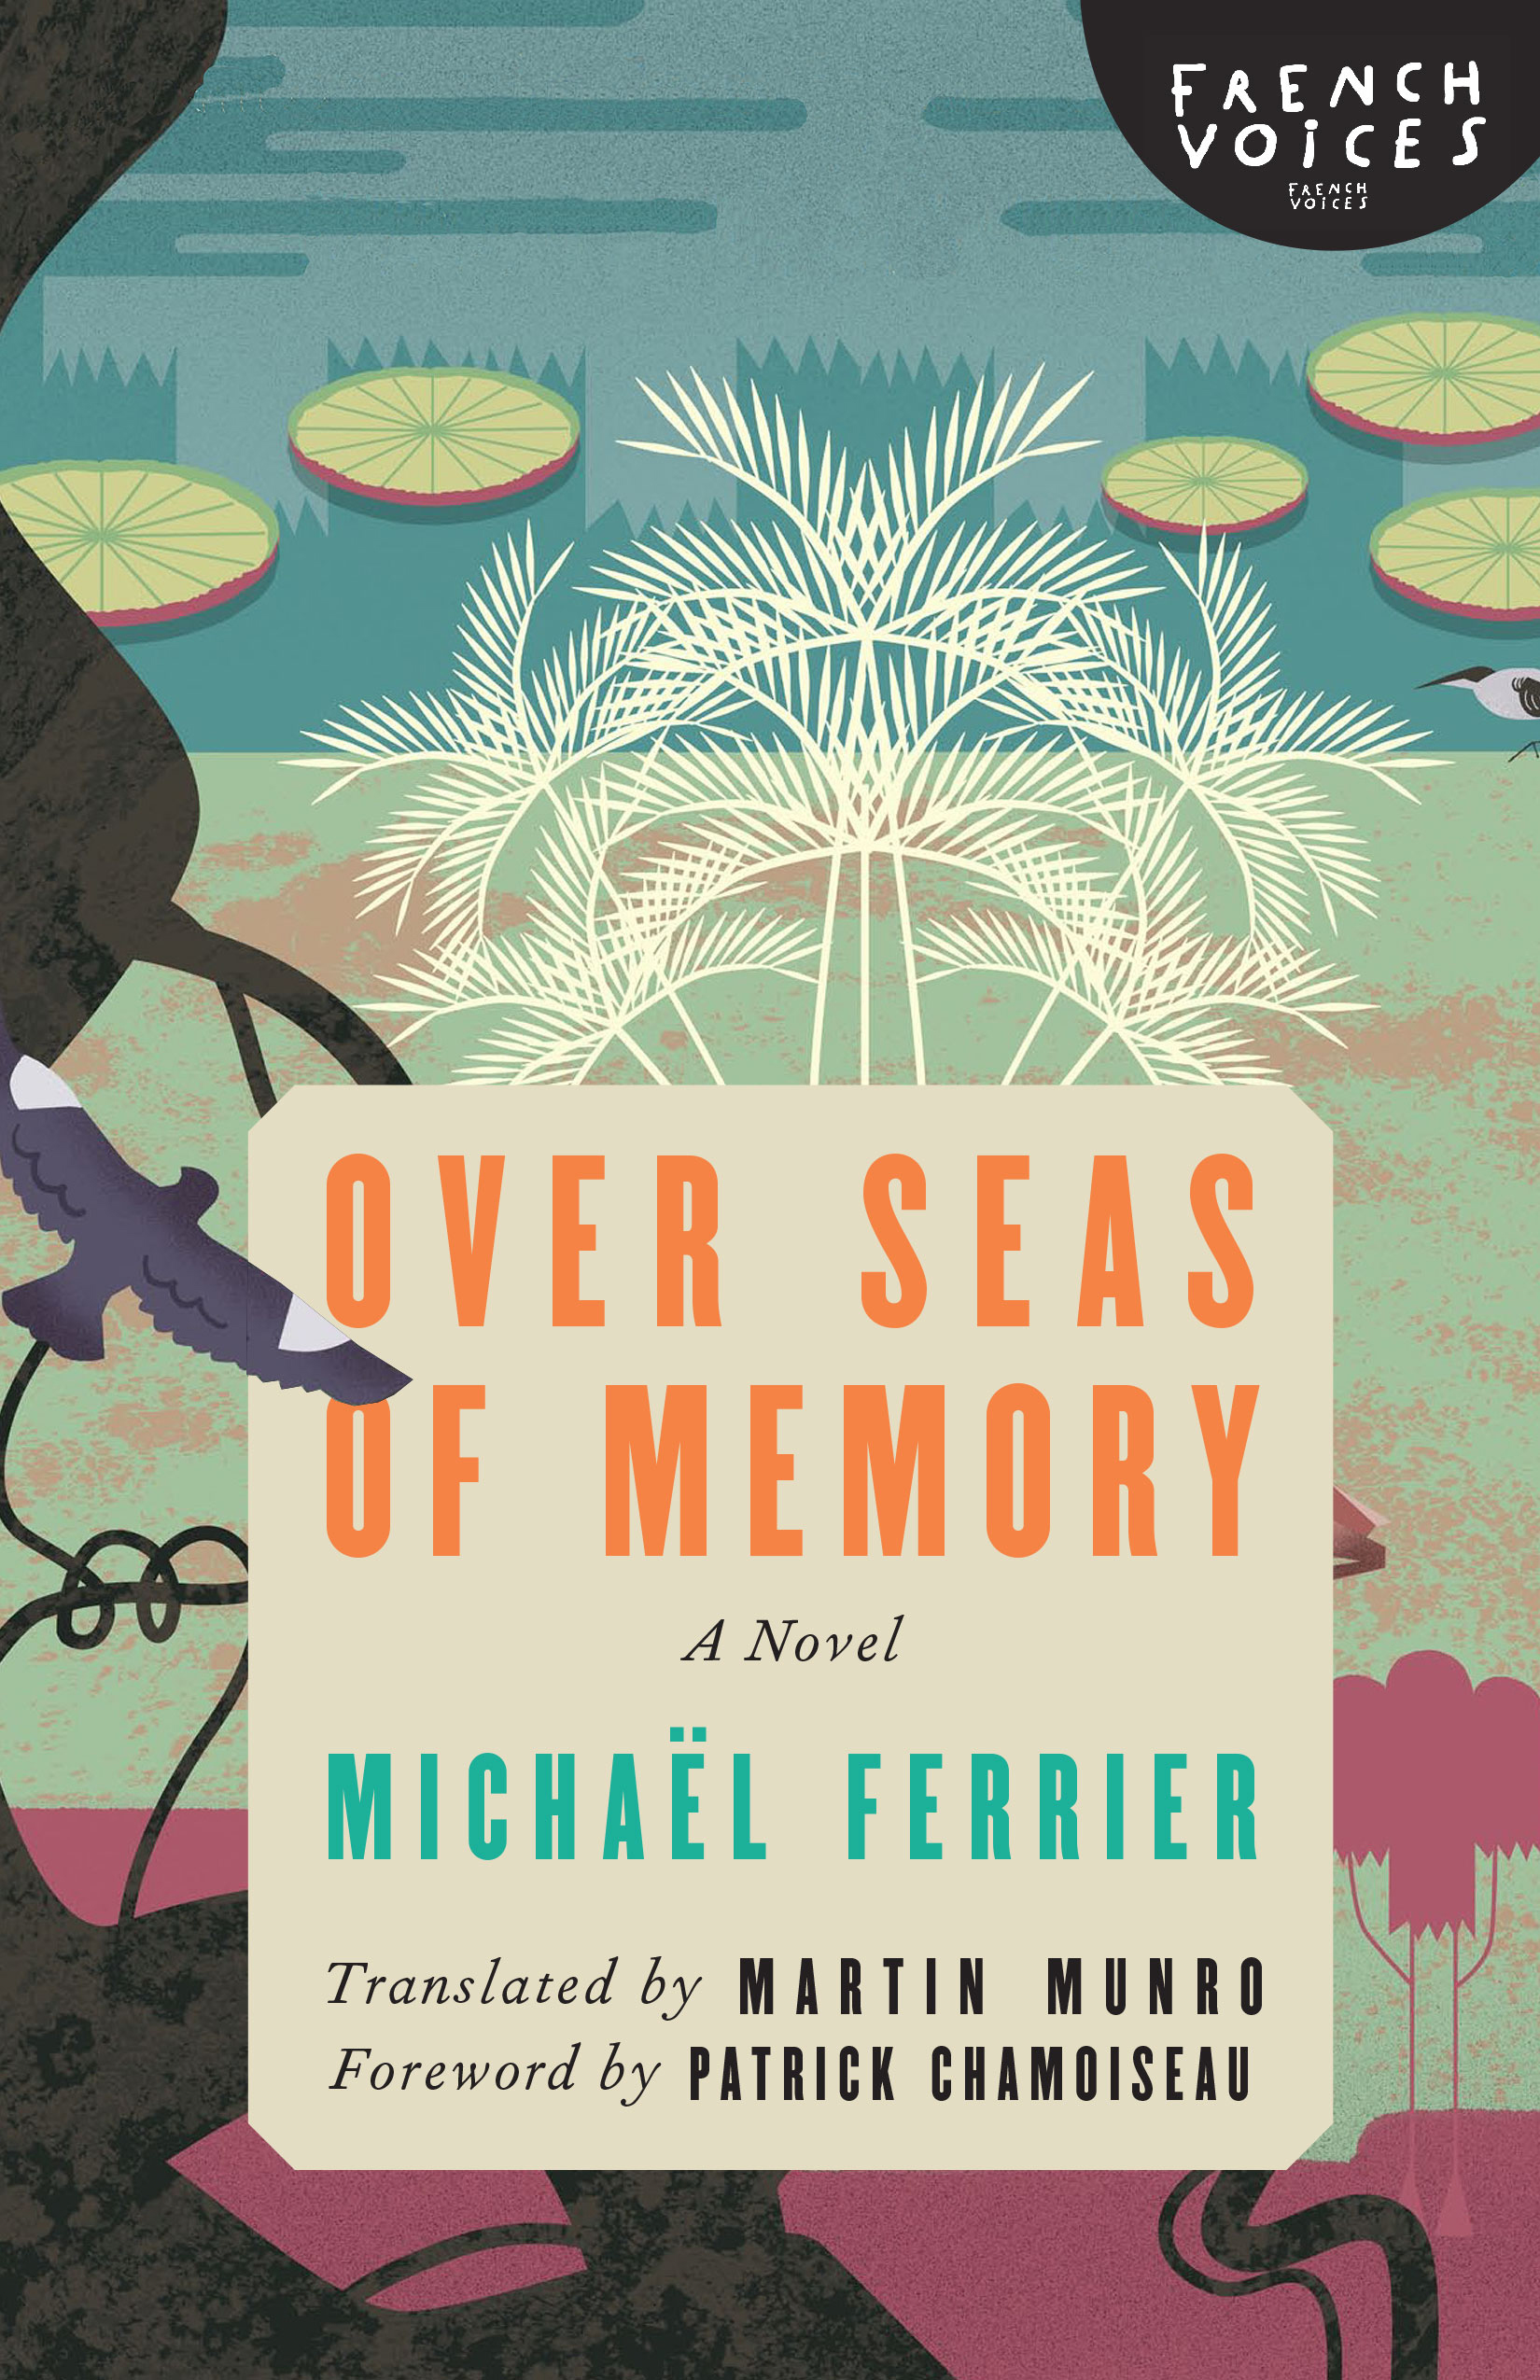 Over Seas of Memory: A Novel